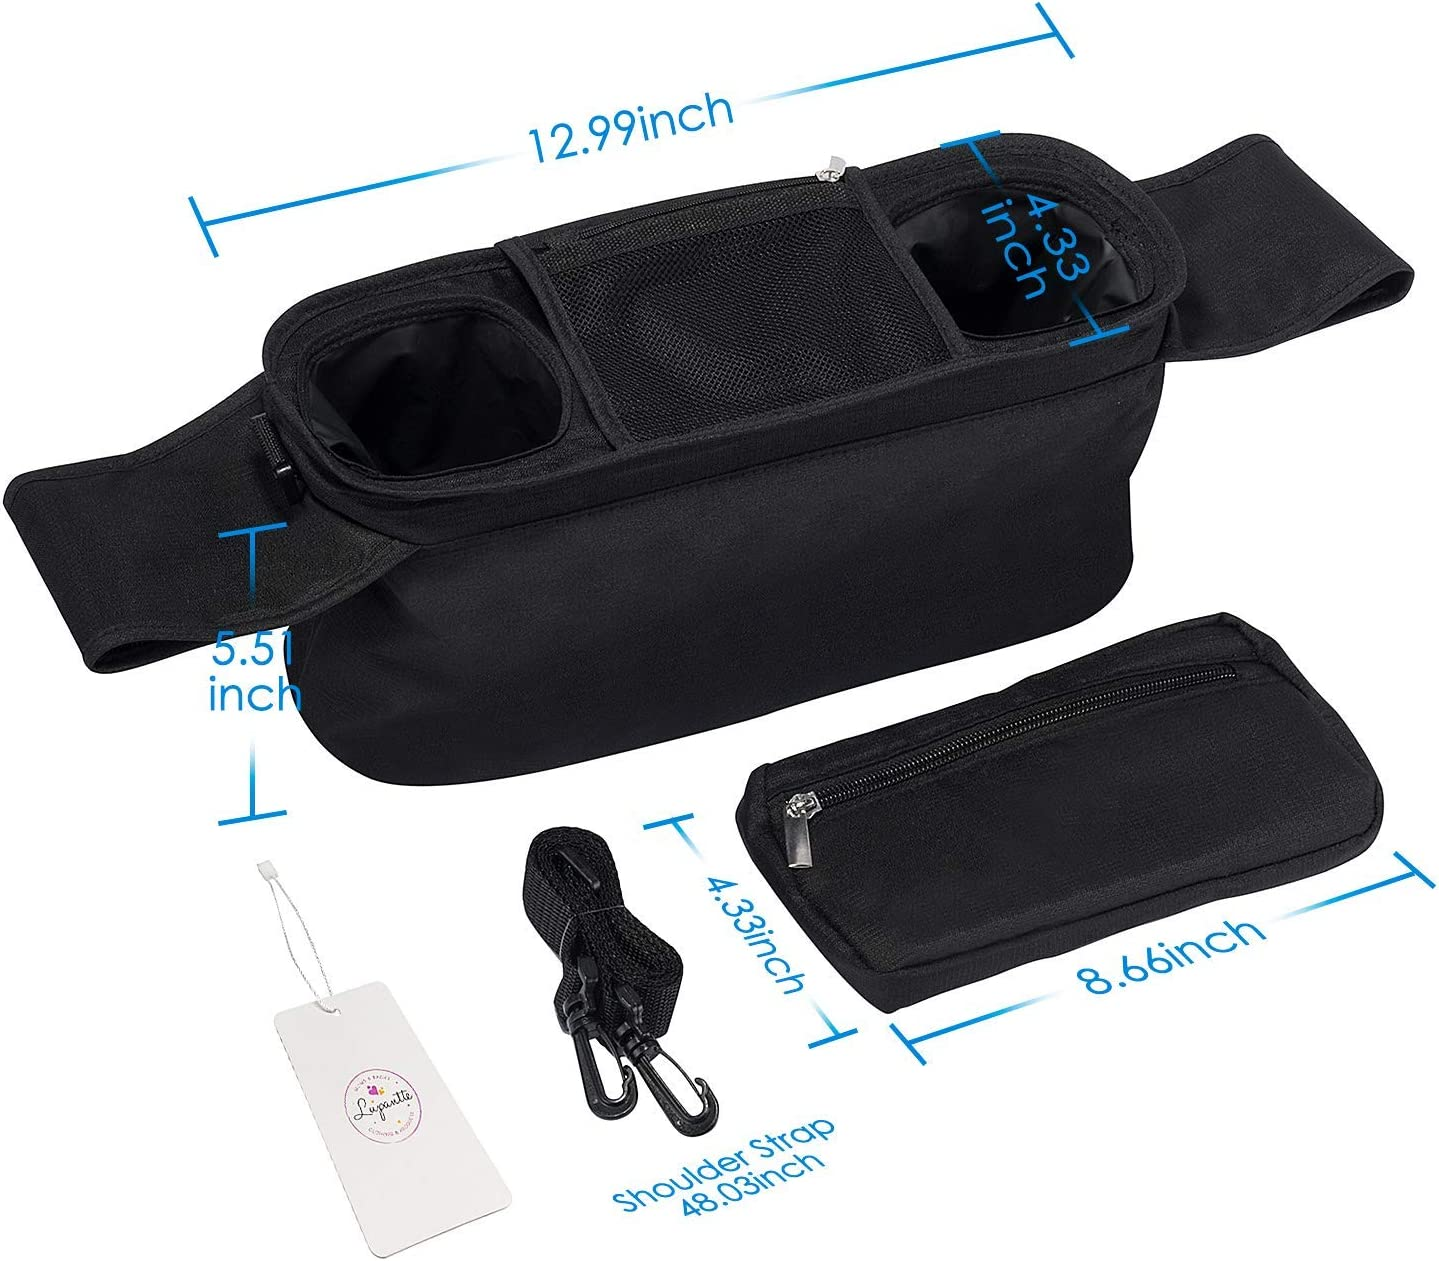 Loneflash Universal Stroller Organizer with 2 Insulated Cup Holders Phone for Carrying Diaper Toy Universal Baby Pram Buggy Organiser Pushchair Stroller Storage Bag Lupantte Stroller Accessories